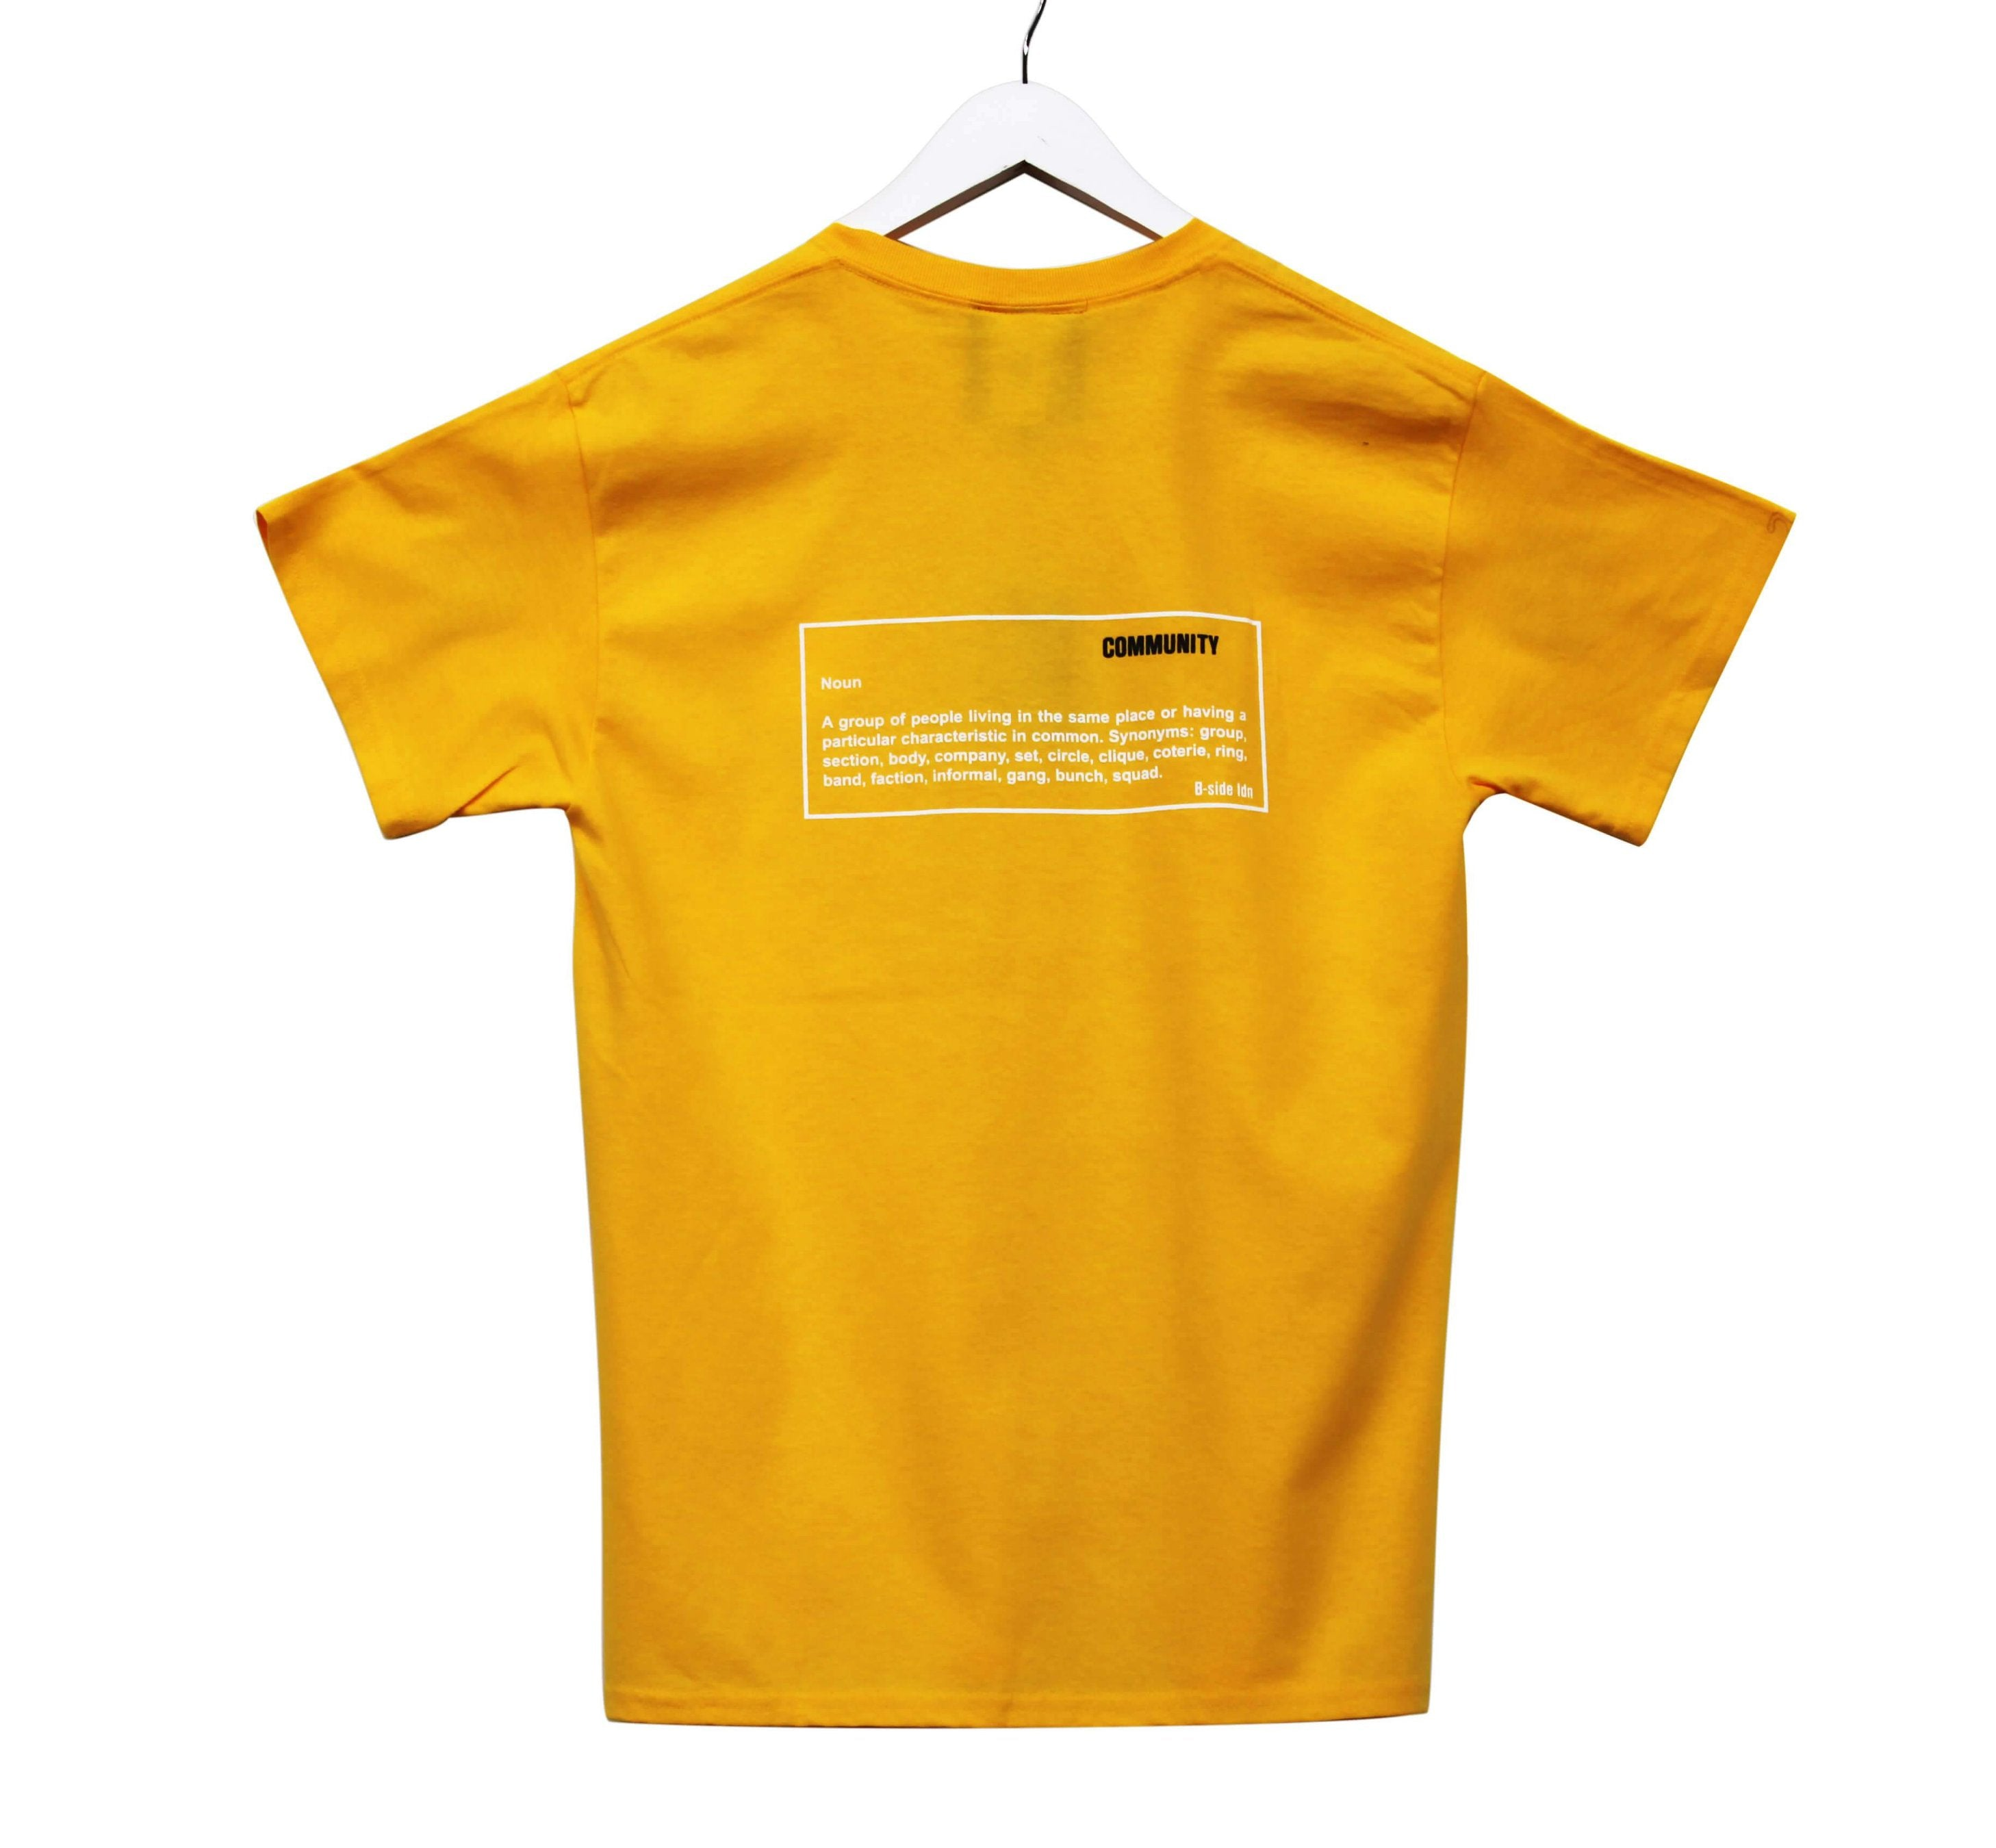 COMMUNITY T-SHIRT / YELLOW | B-sidebywale